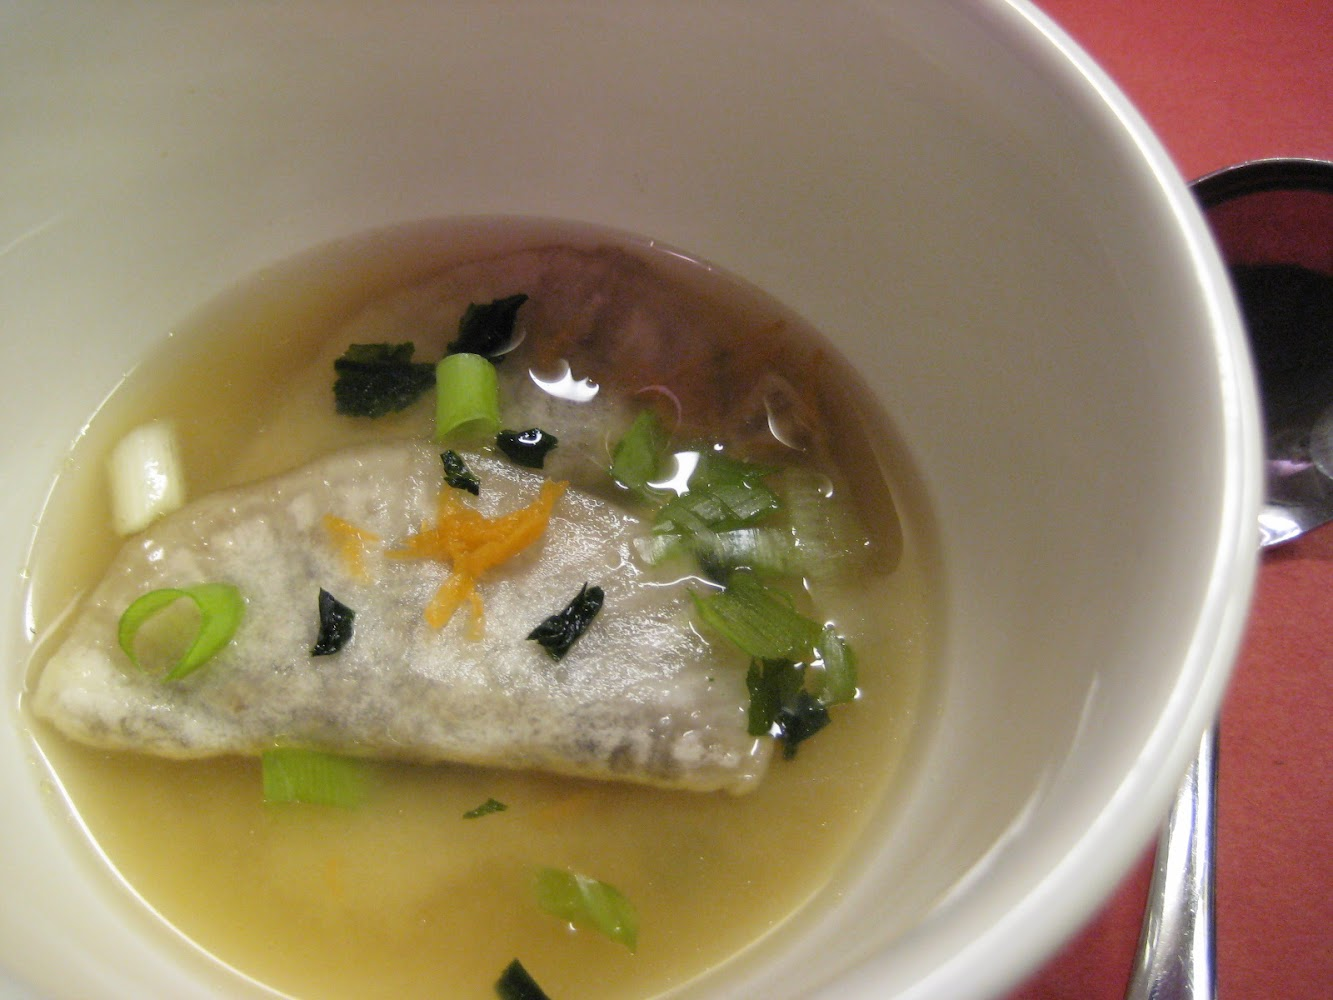 Daikon Dumpling in Miso Broth